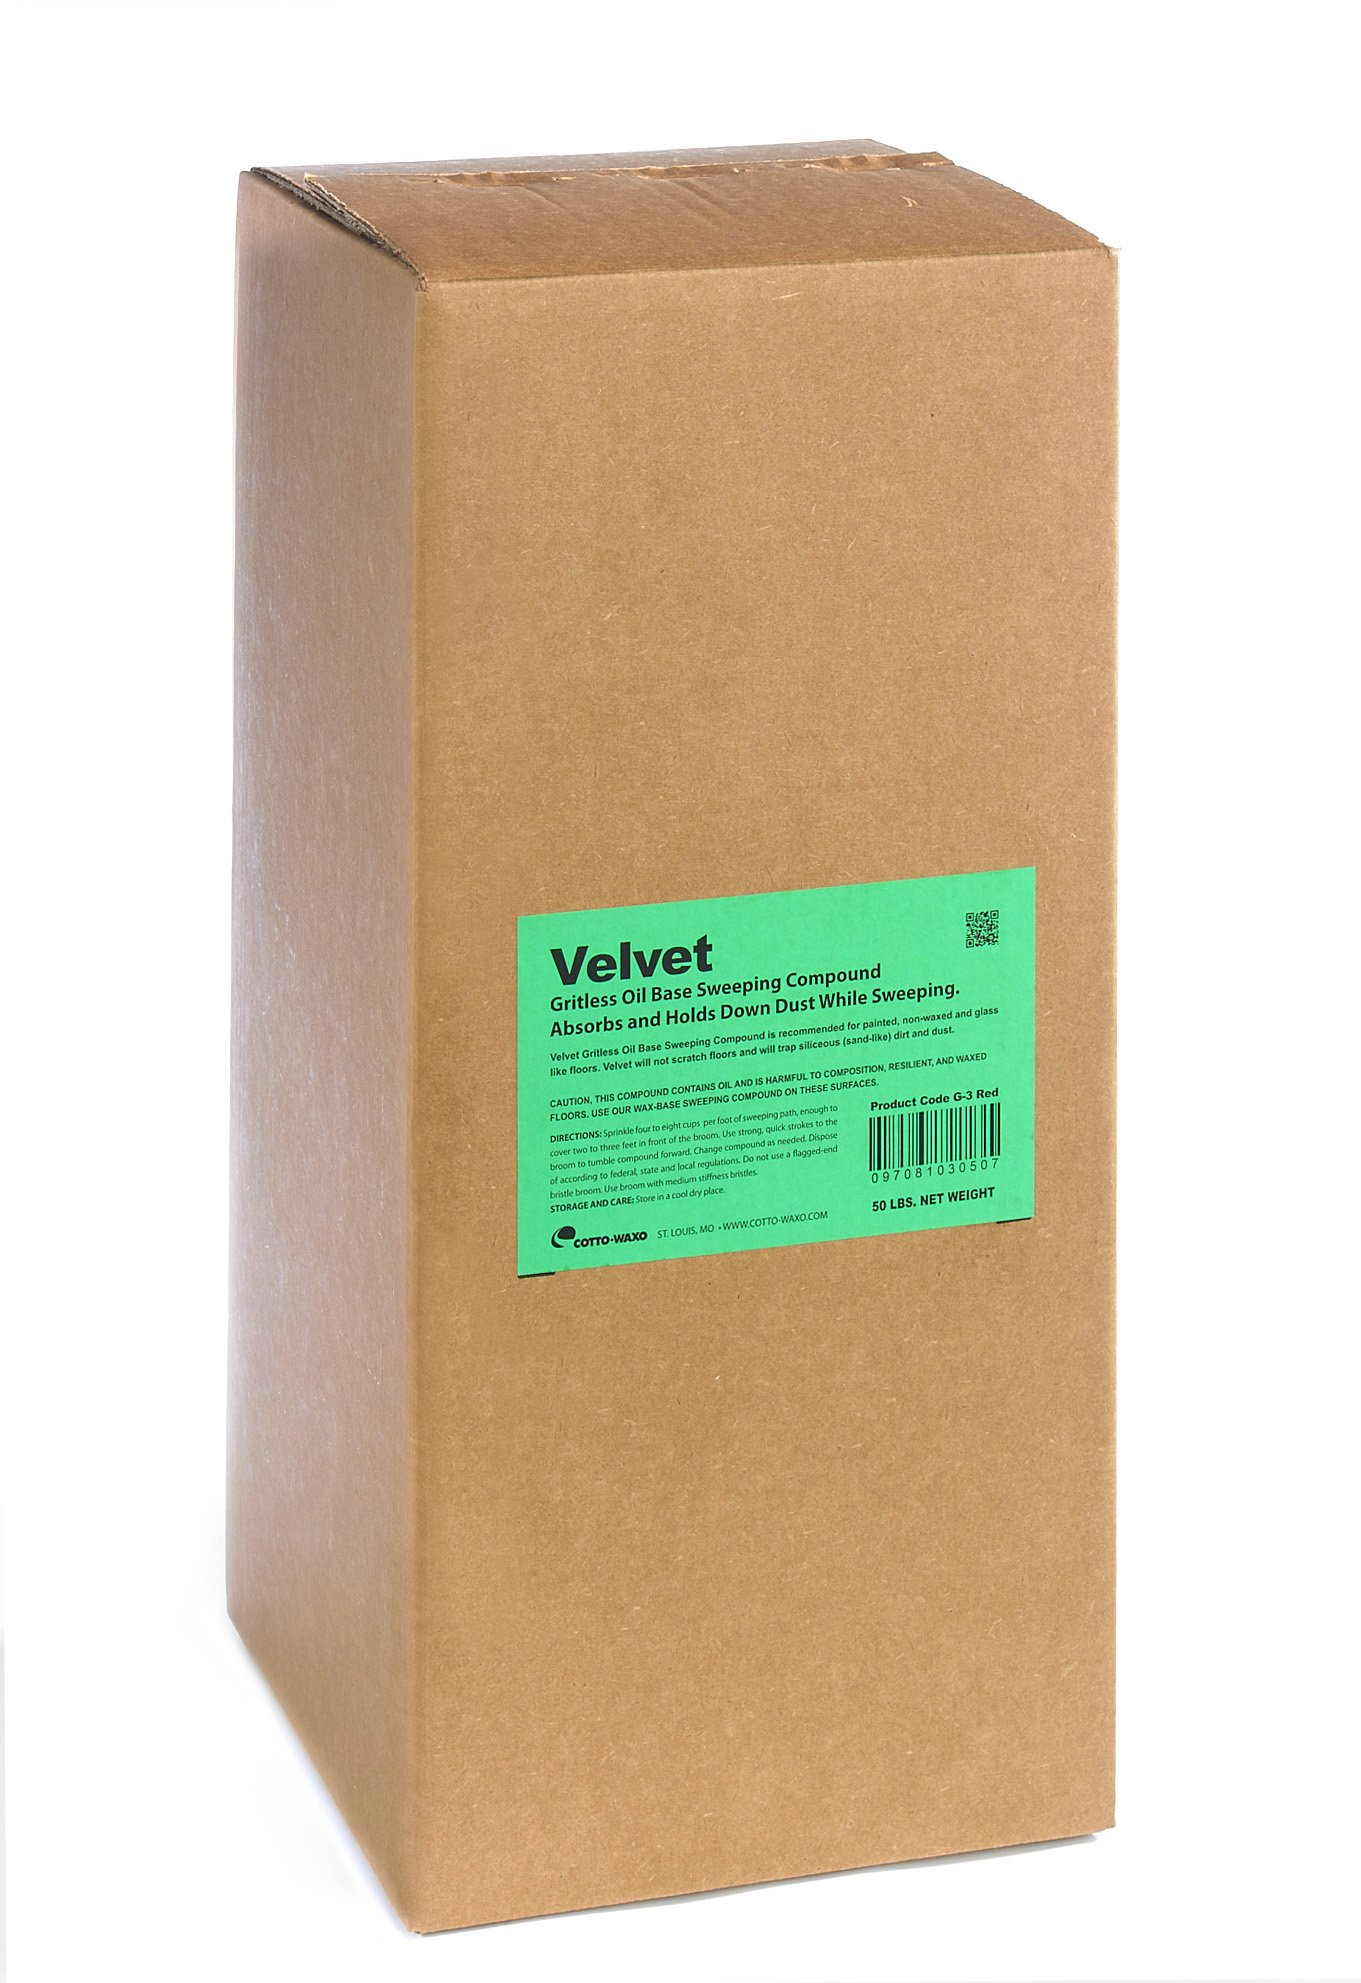 Cotto-Waxo G-3 Velvet Gritless Oil Base Sweeping Compound, 50 lbs Box